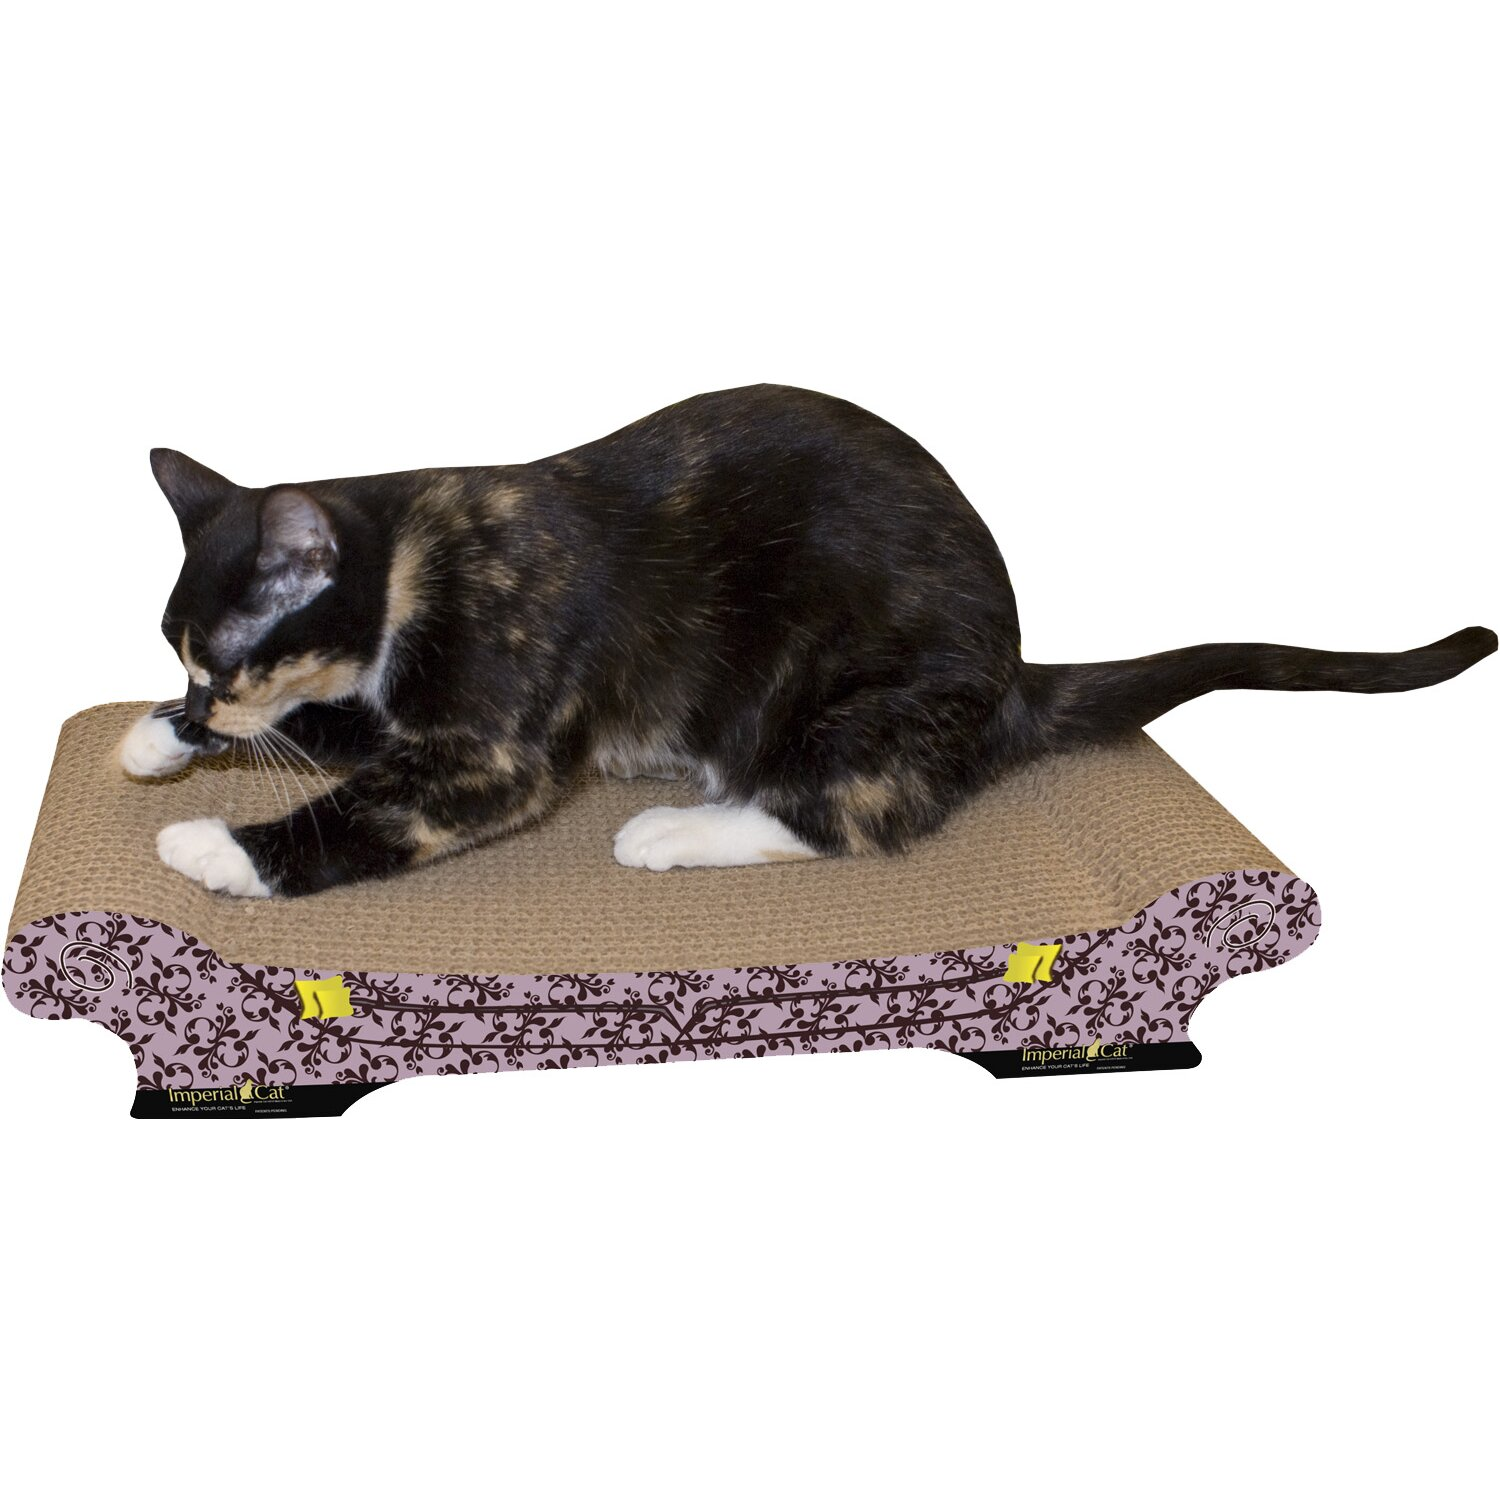 Vetericyn Wound Care 250ml 11300 further How To Clean Seagrass Rugs furthermore 113 Wooden Planter Box White Medium furthermore Sisal Carpet further PetFusion 3 Sided Vertical Cardboard Scratching Board PF CLMParent PETF1026. on cat scratching rugs